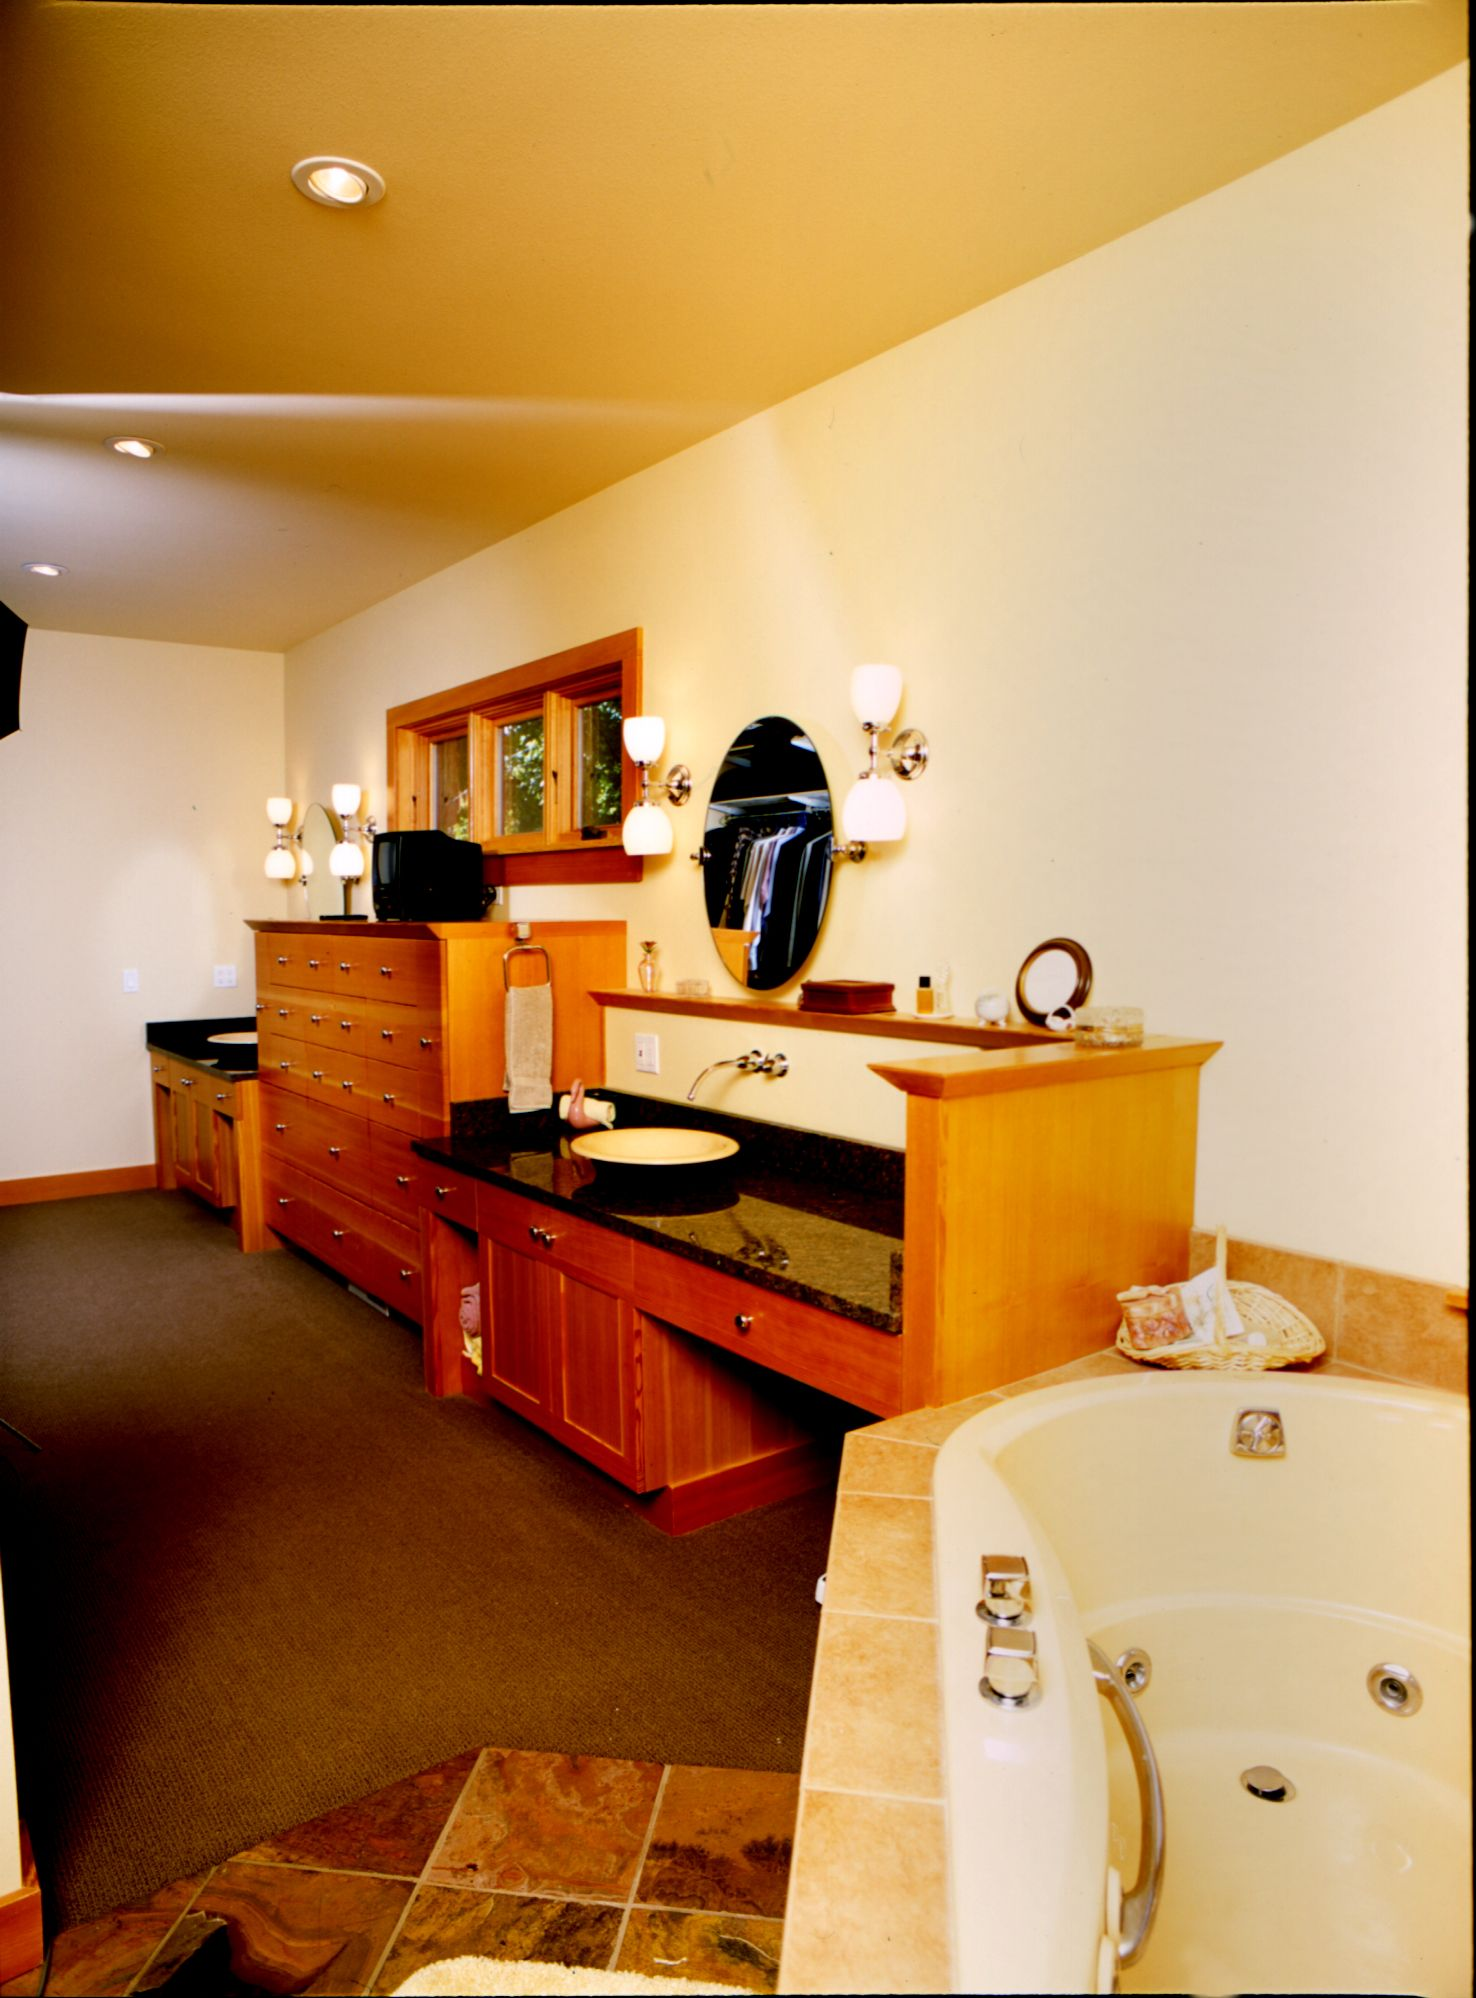 Fir wood species. Bathroom vanity and drawers. Stainless steel & Granite counter tops. Contemporary Style.